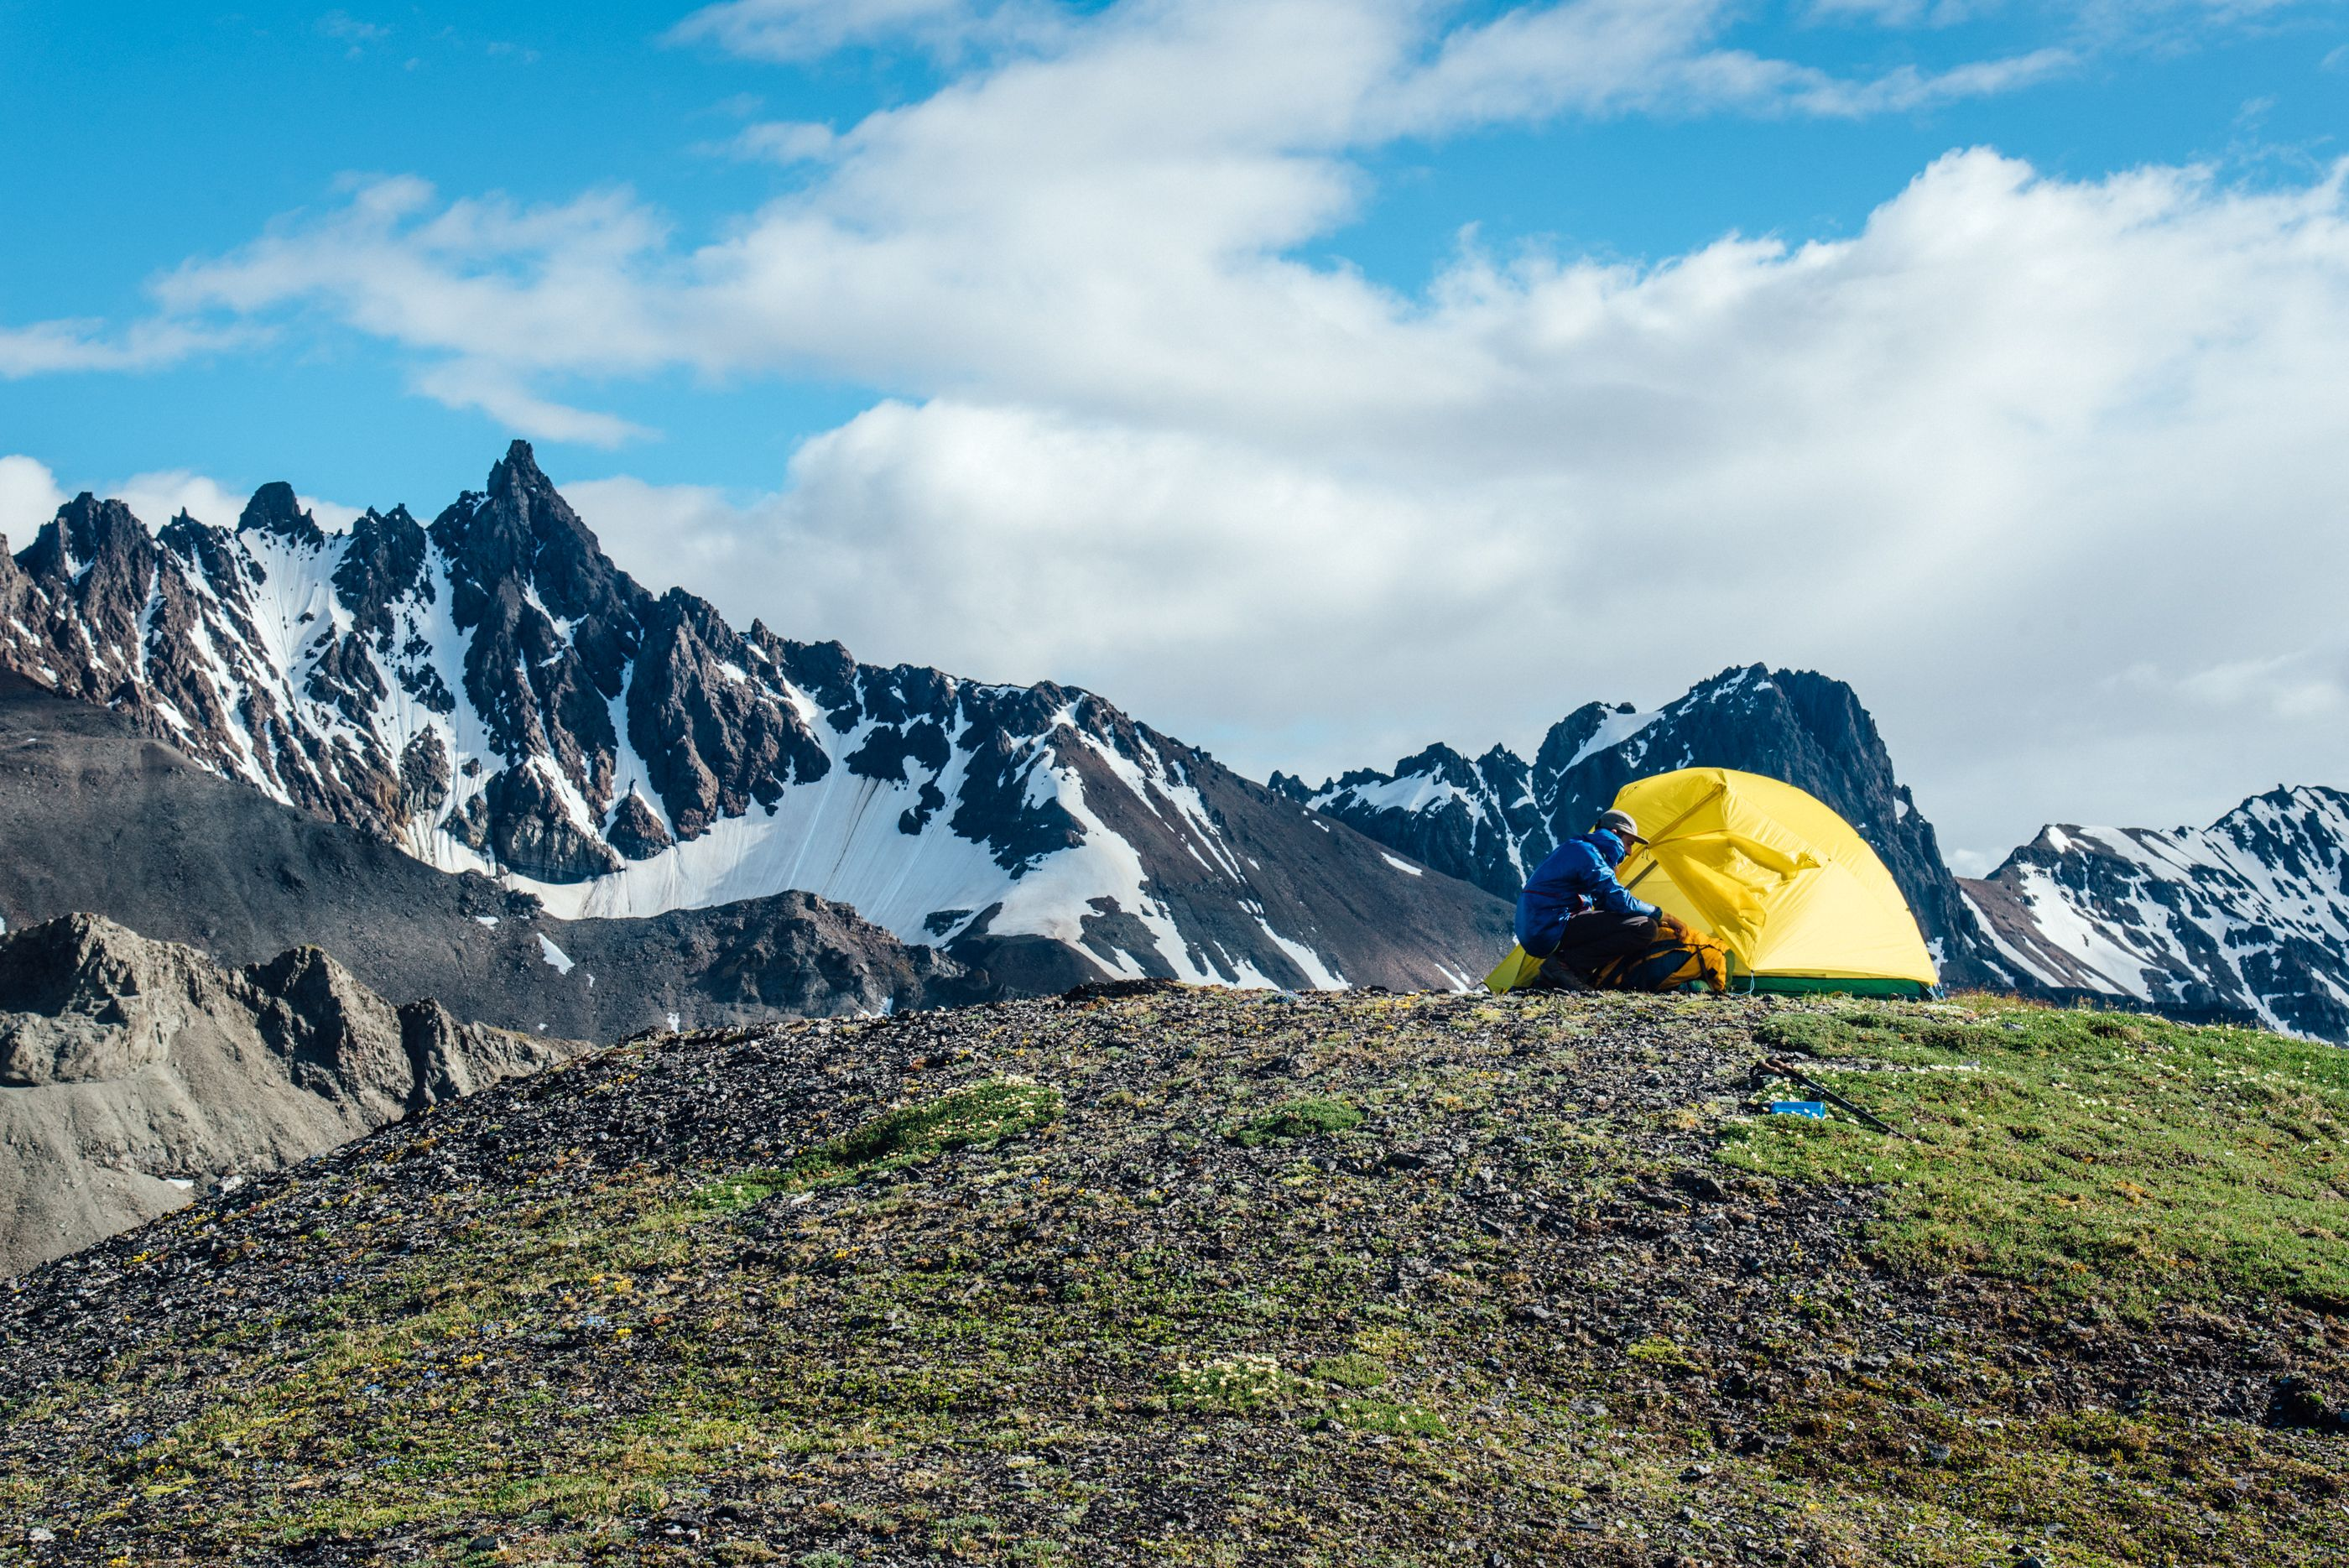 Enter to win a trip for 2 to Alaska + Gear package from Cotopaxi, Lifestraw, Cairn, Proof Eyewear, Munk Pack, the Dyrt, Wilderness Culture, and Alaska Airlines.